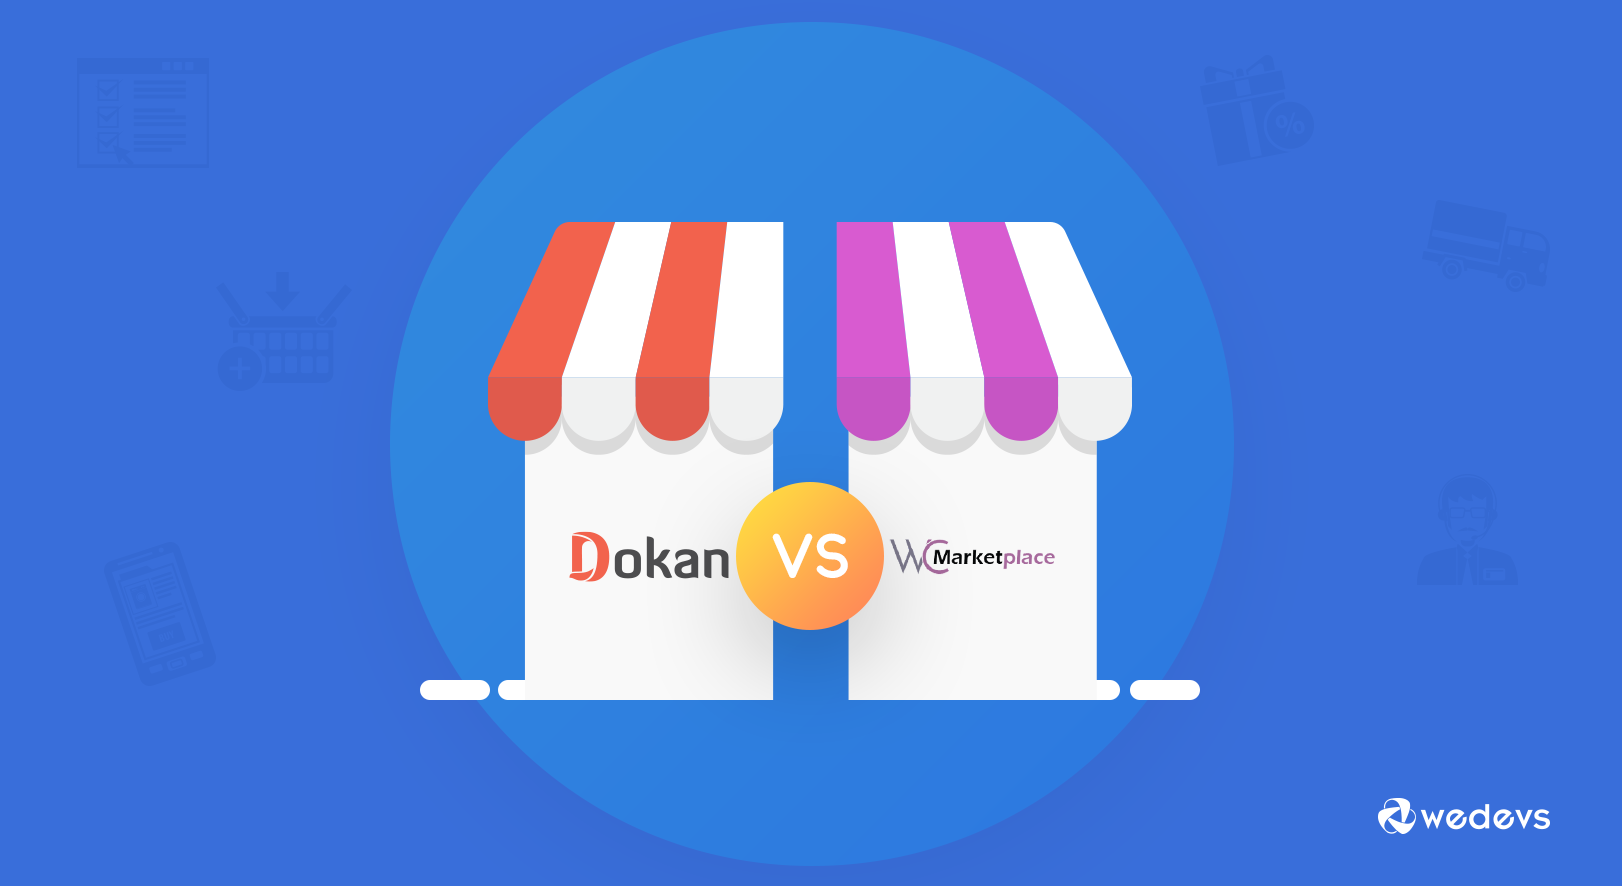 wc marketplace vs dokan comparison